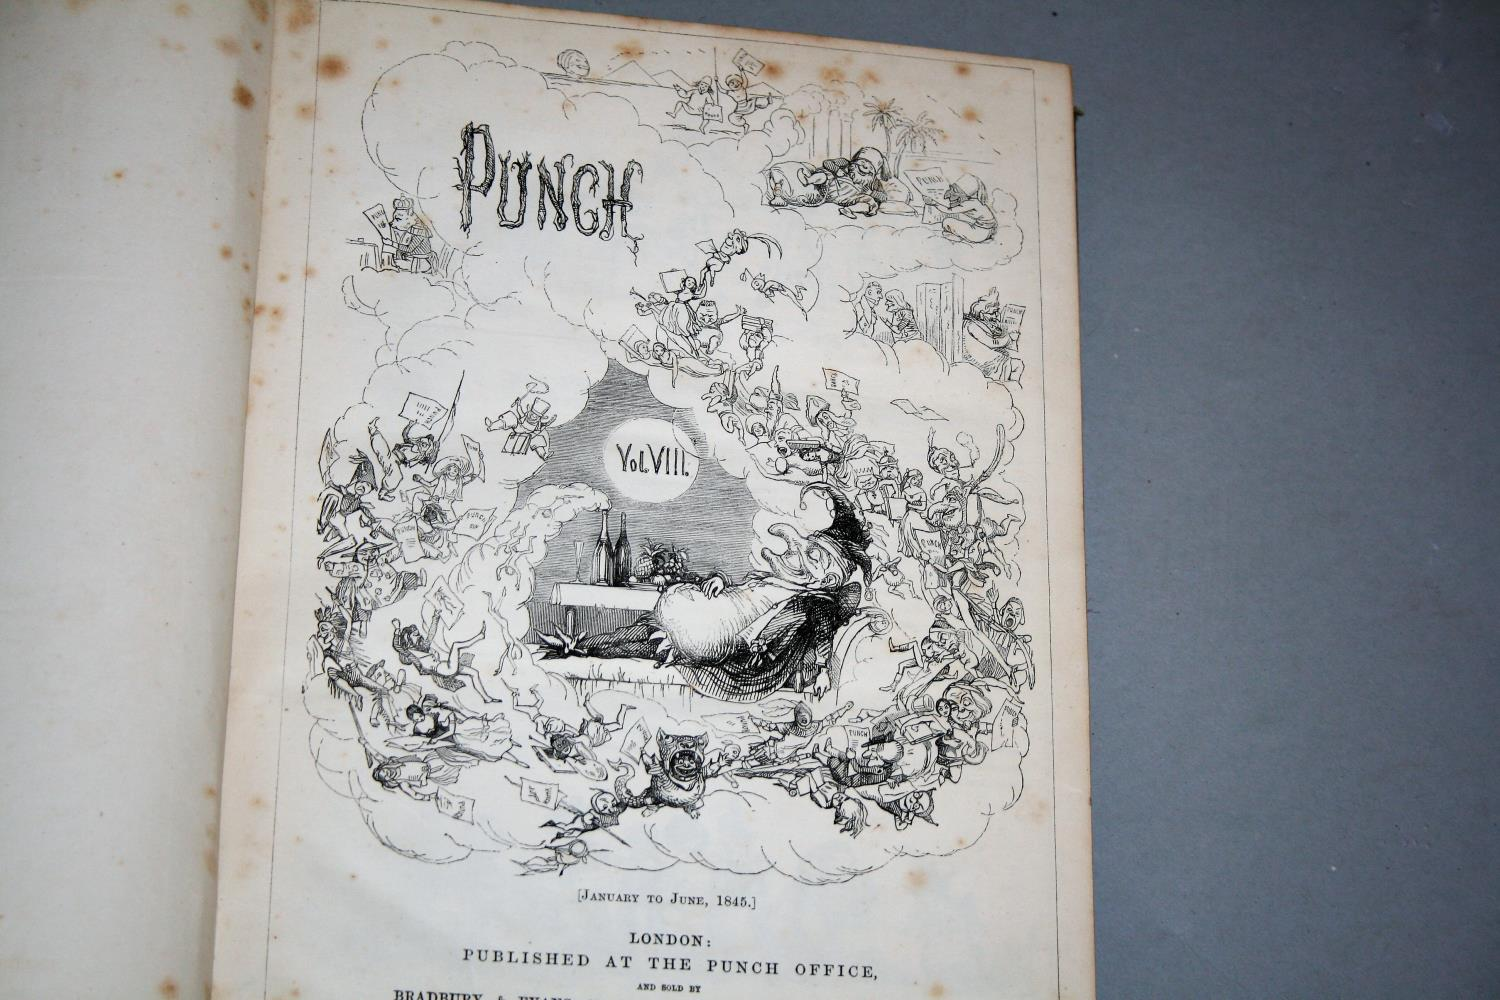 """Six volumes of """"The Popular Encyclopaedia"""" and five books """"Punch"""" 1841, 1842, 1843, 1845, 1846. - Image 4 of 4"""